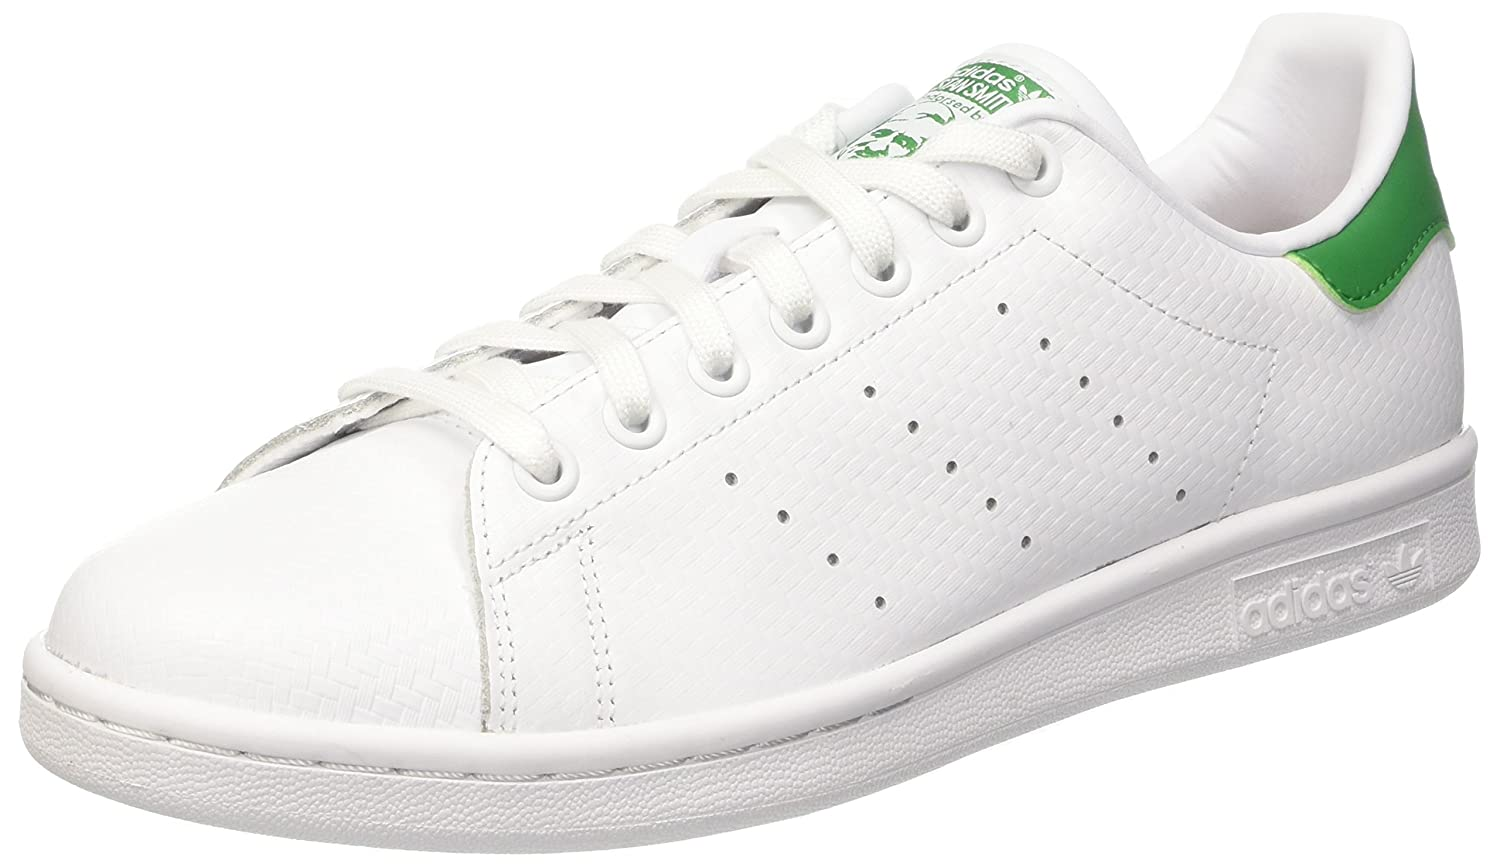 White White Green S80029 Adidas ORIGINALS Men's Stan Smith shoes